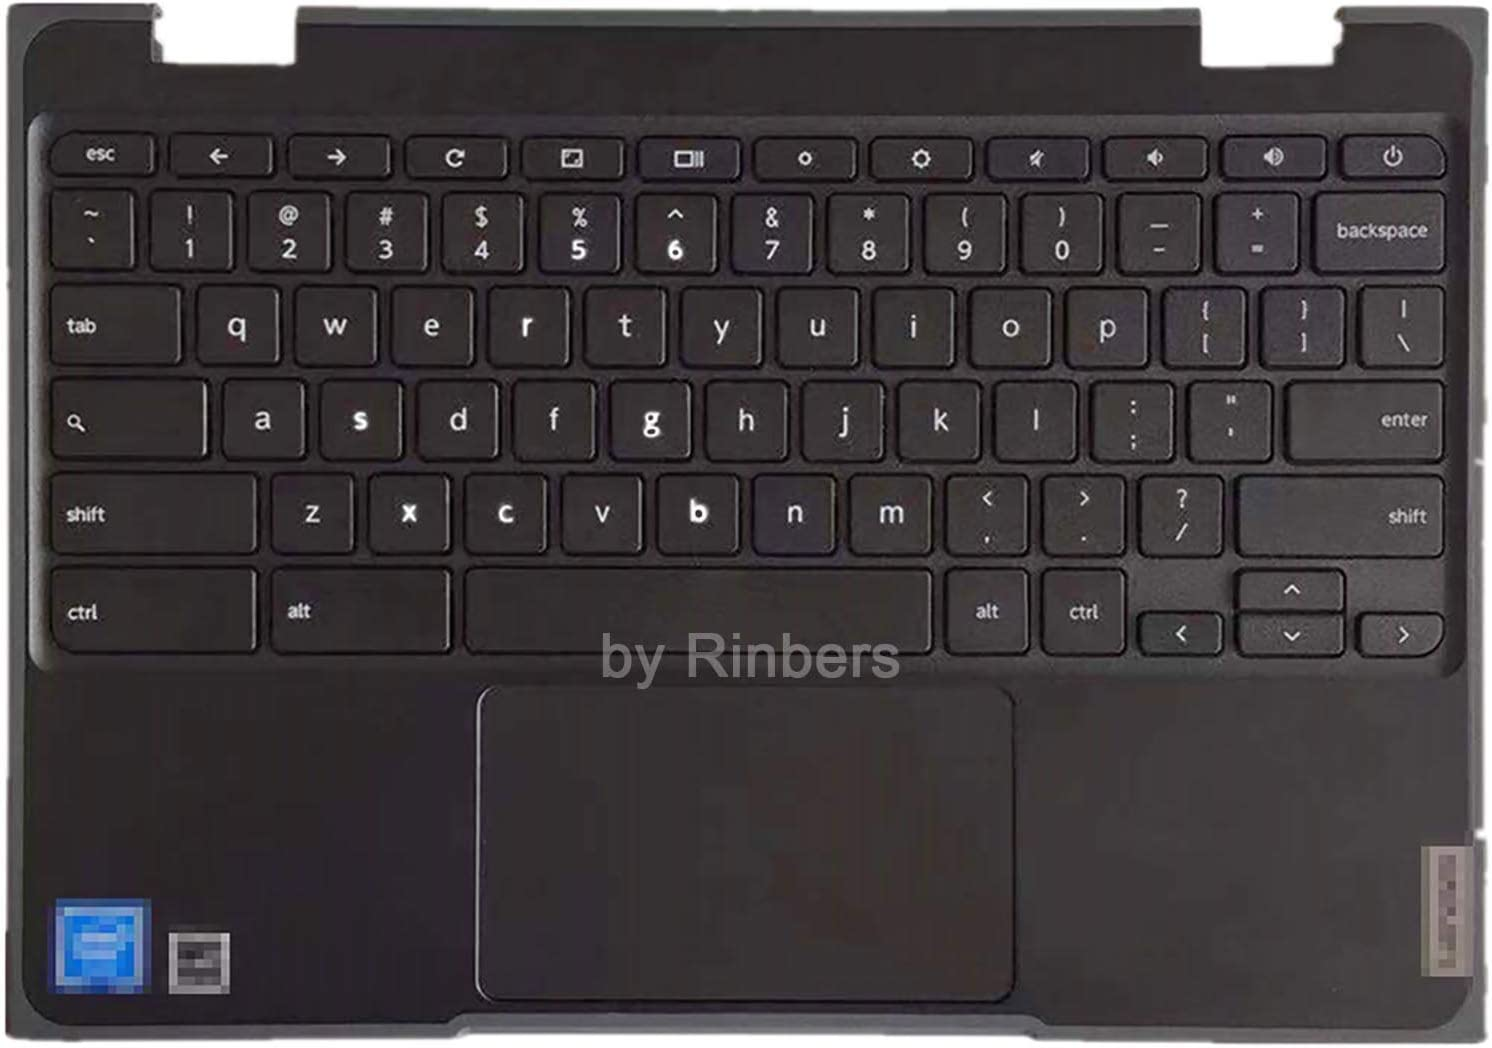 Rinbers Palmrest Upper Case with US Keyboard and Touchpad Assembly Replacement for Lenovo Chromebook 11 100e 2nd Gen 81MA 5CB0T79741 GLKR 5CB0Y57920 (NOT for 100e Gen 2 MTK Version)